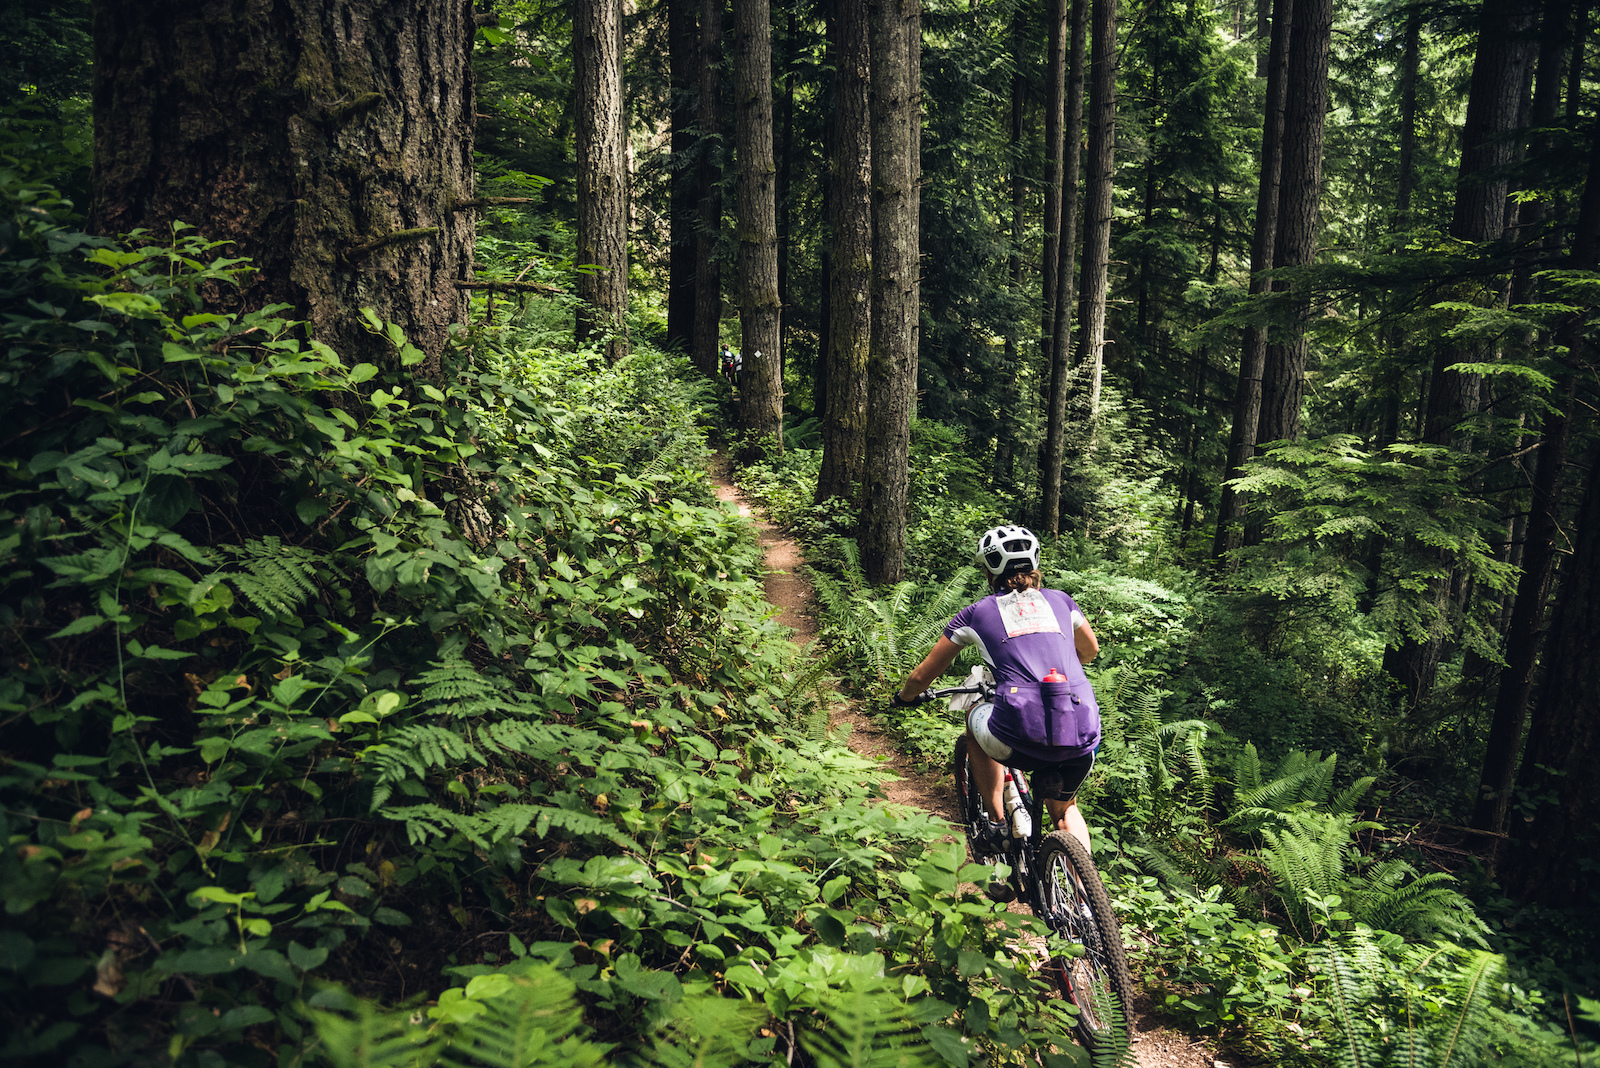 Looking for singletrack The trails around Sechelt have it in abundance. Come her and get tickled by the foliage.